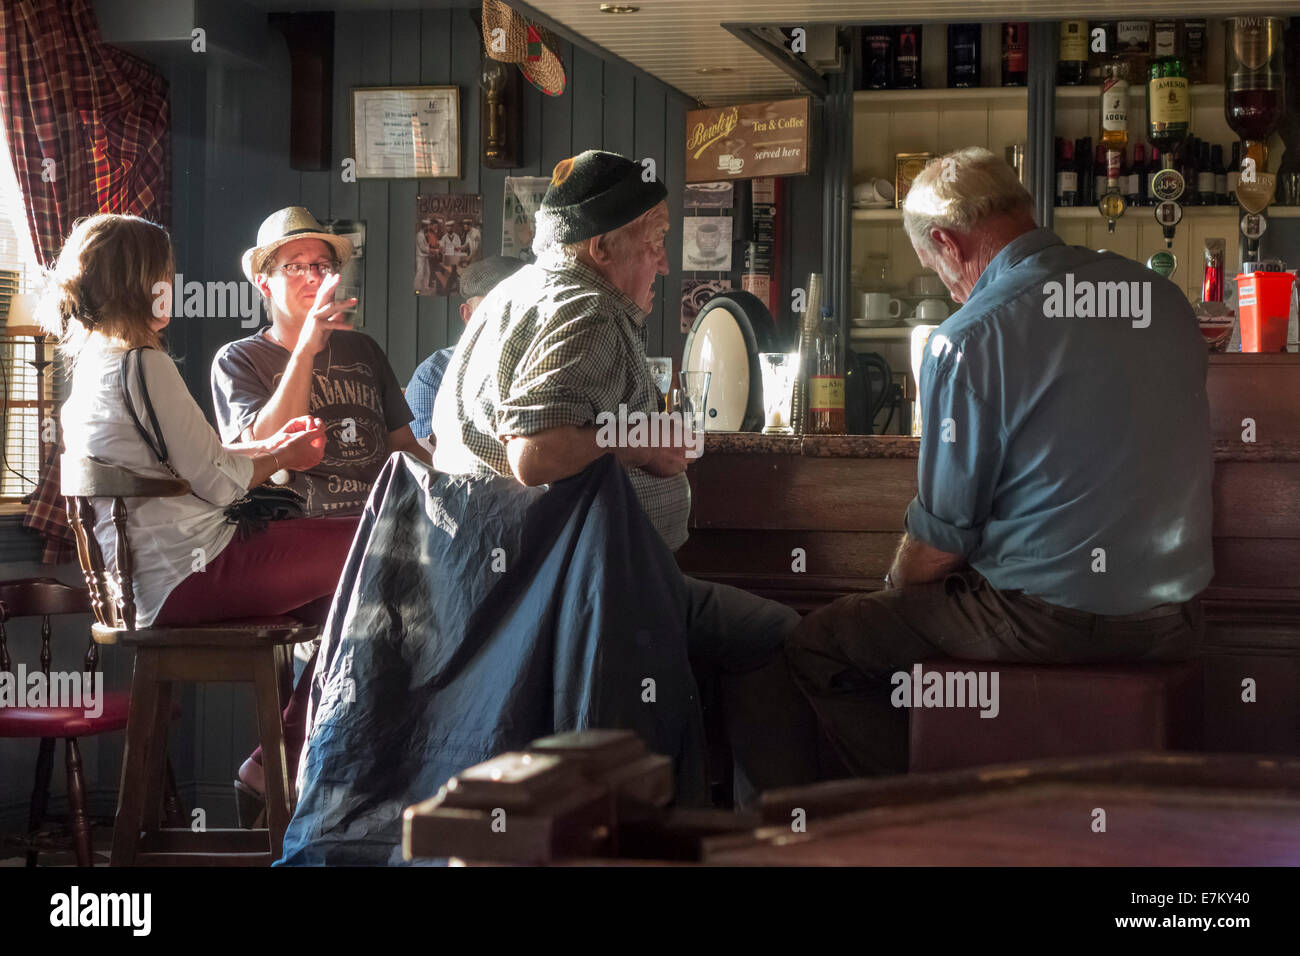 Drinkers in a traditional pub in the centre of Killorglin, County Kerry, Republic of Ireland - Stock Image